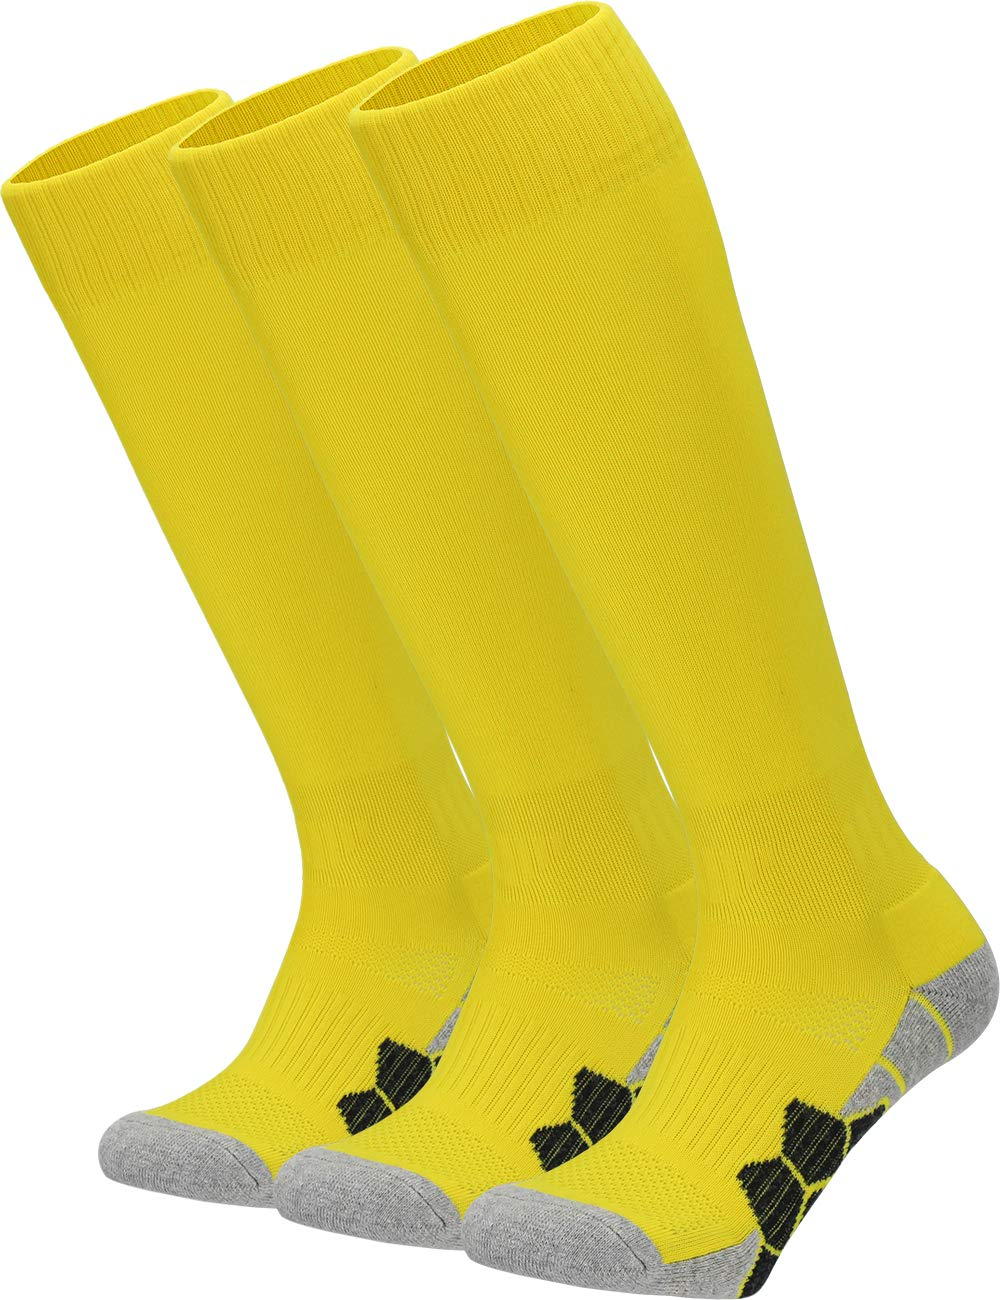 Youth Kids Adult Knee High Cotton Golf Socks Boys Girls Parent-Child Outdoor Active Long Towel Bottom Socks, 3-Pair Yellow, Size L (Kids 9C-13C / W 10-13 / M 8-12) by APTESOL